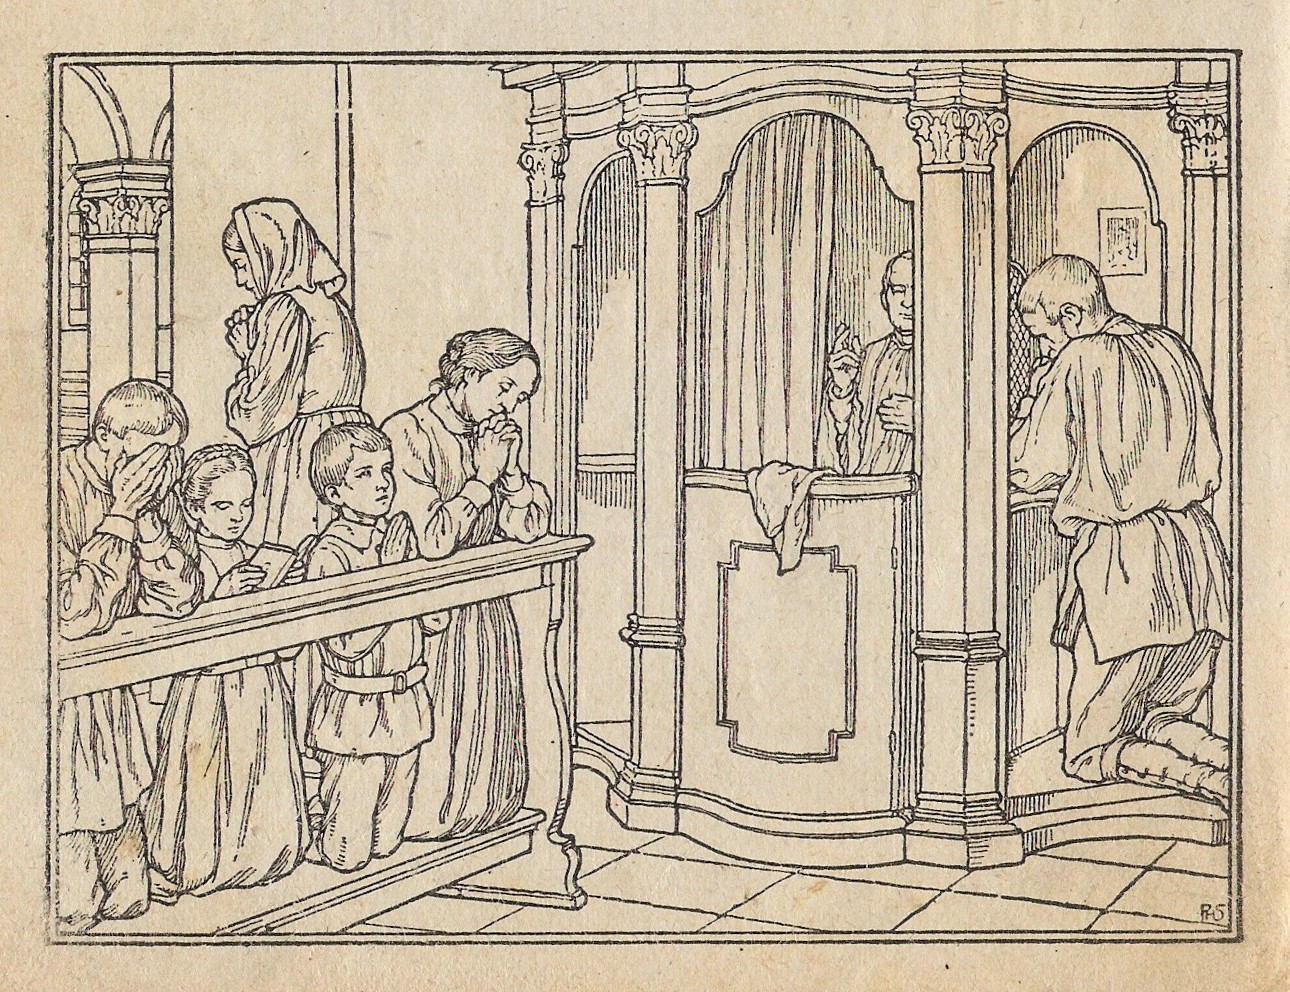 The sacrament of Confession or Penance